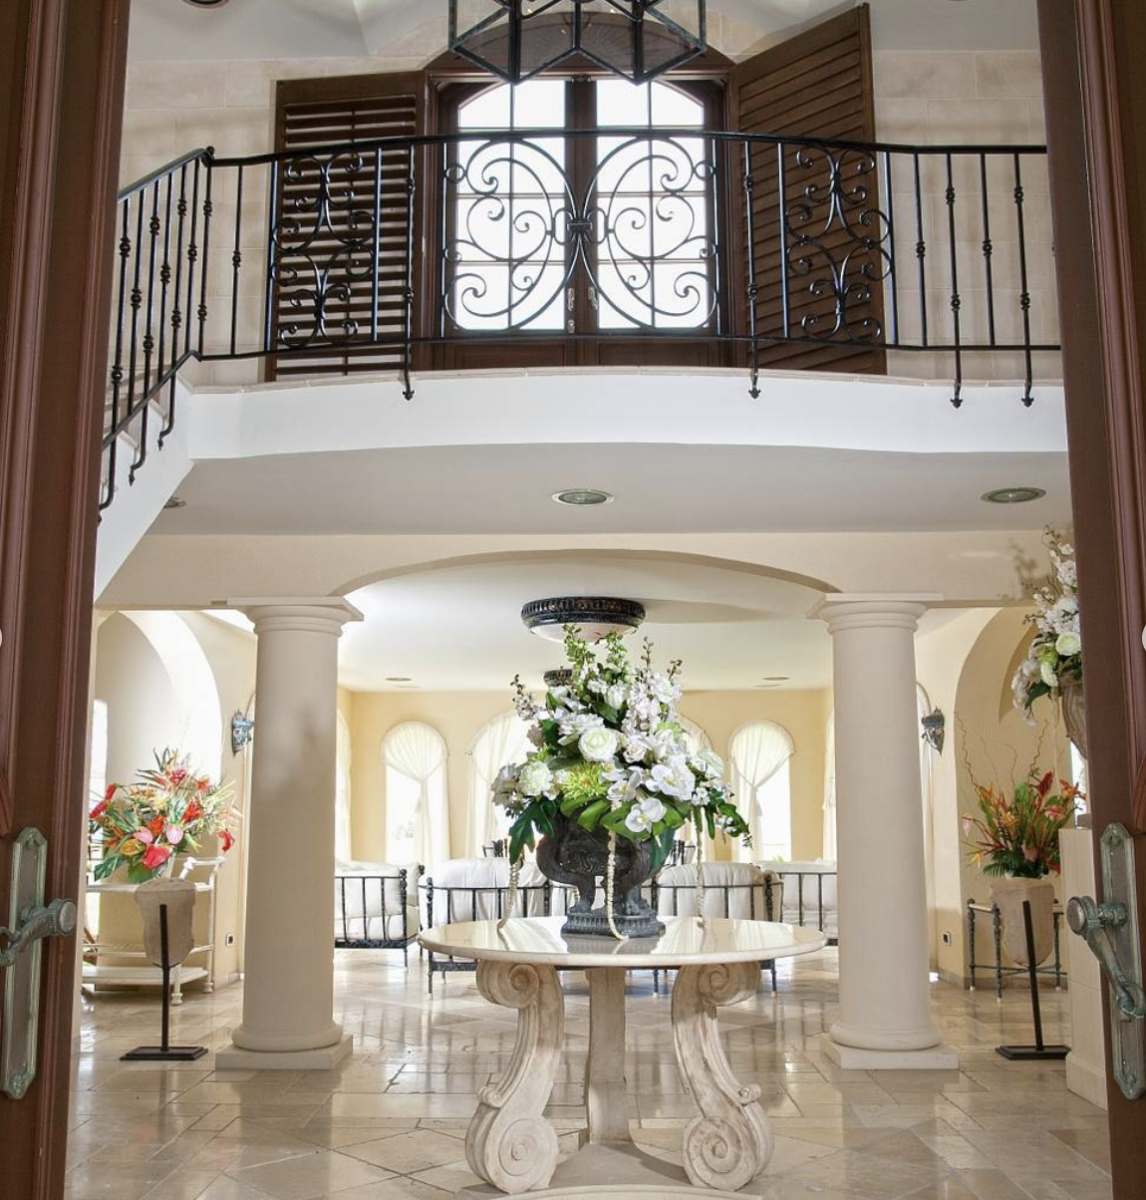 There's A Multimillion-Dollar Trump Mansion For Sale, And People Have Ethics Questions 6